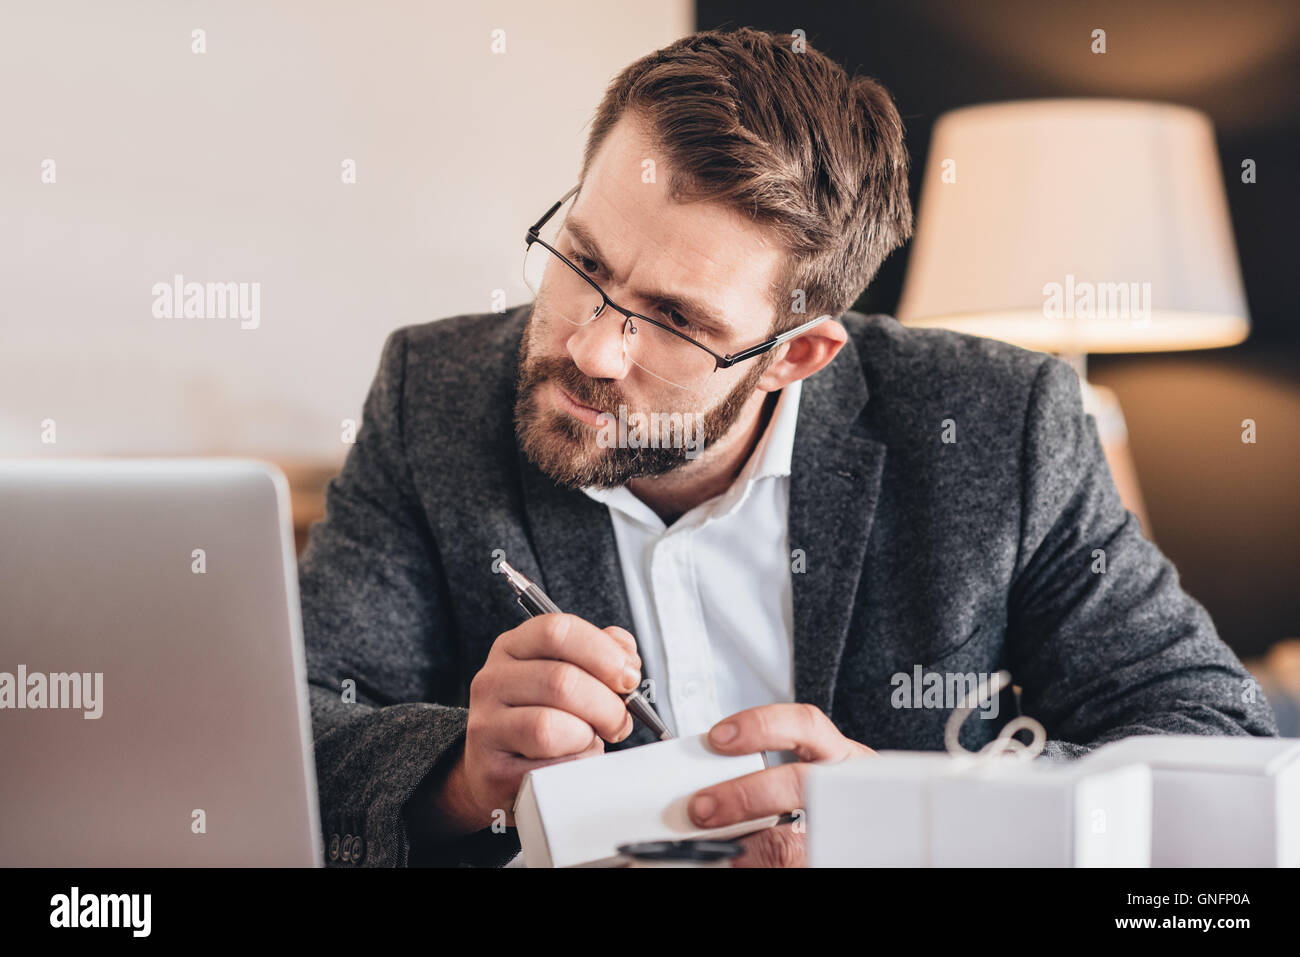 Making sure every detail is correct - Stock Image